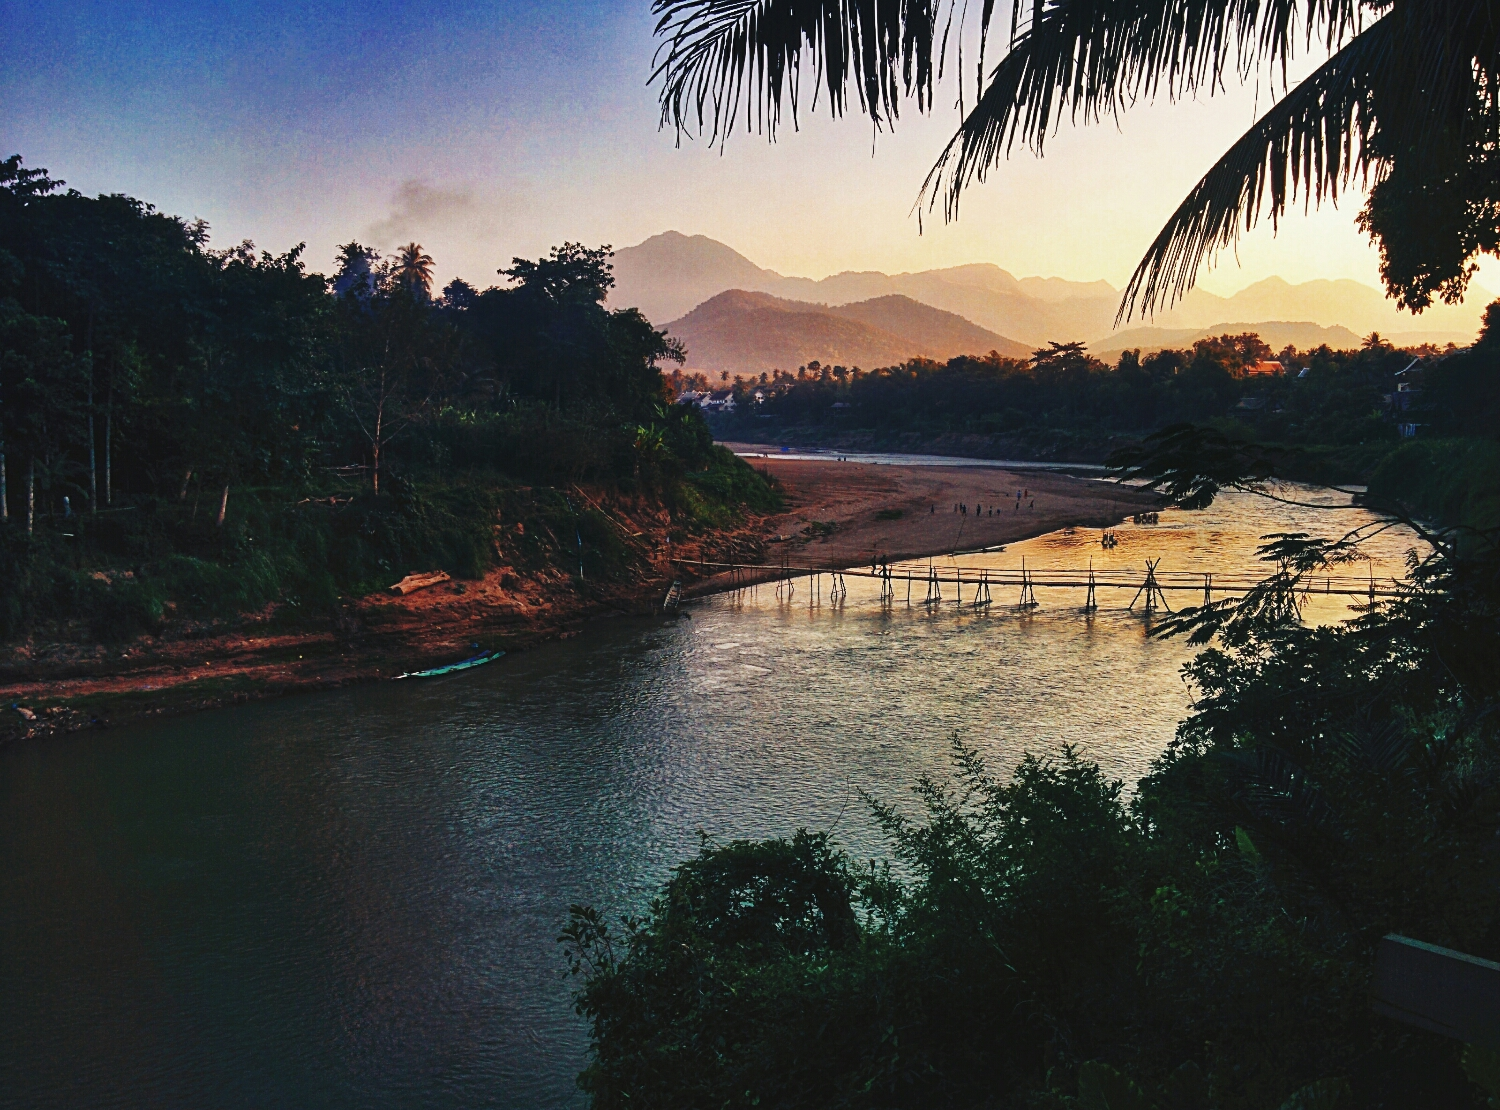 Our current nesting place is found in Luang Prabang, Laos.